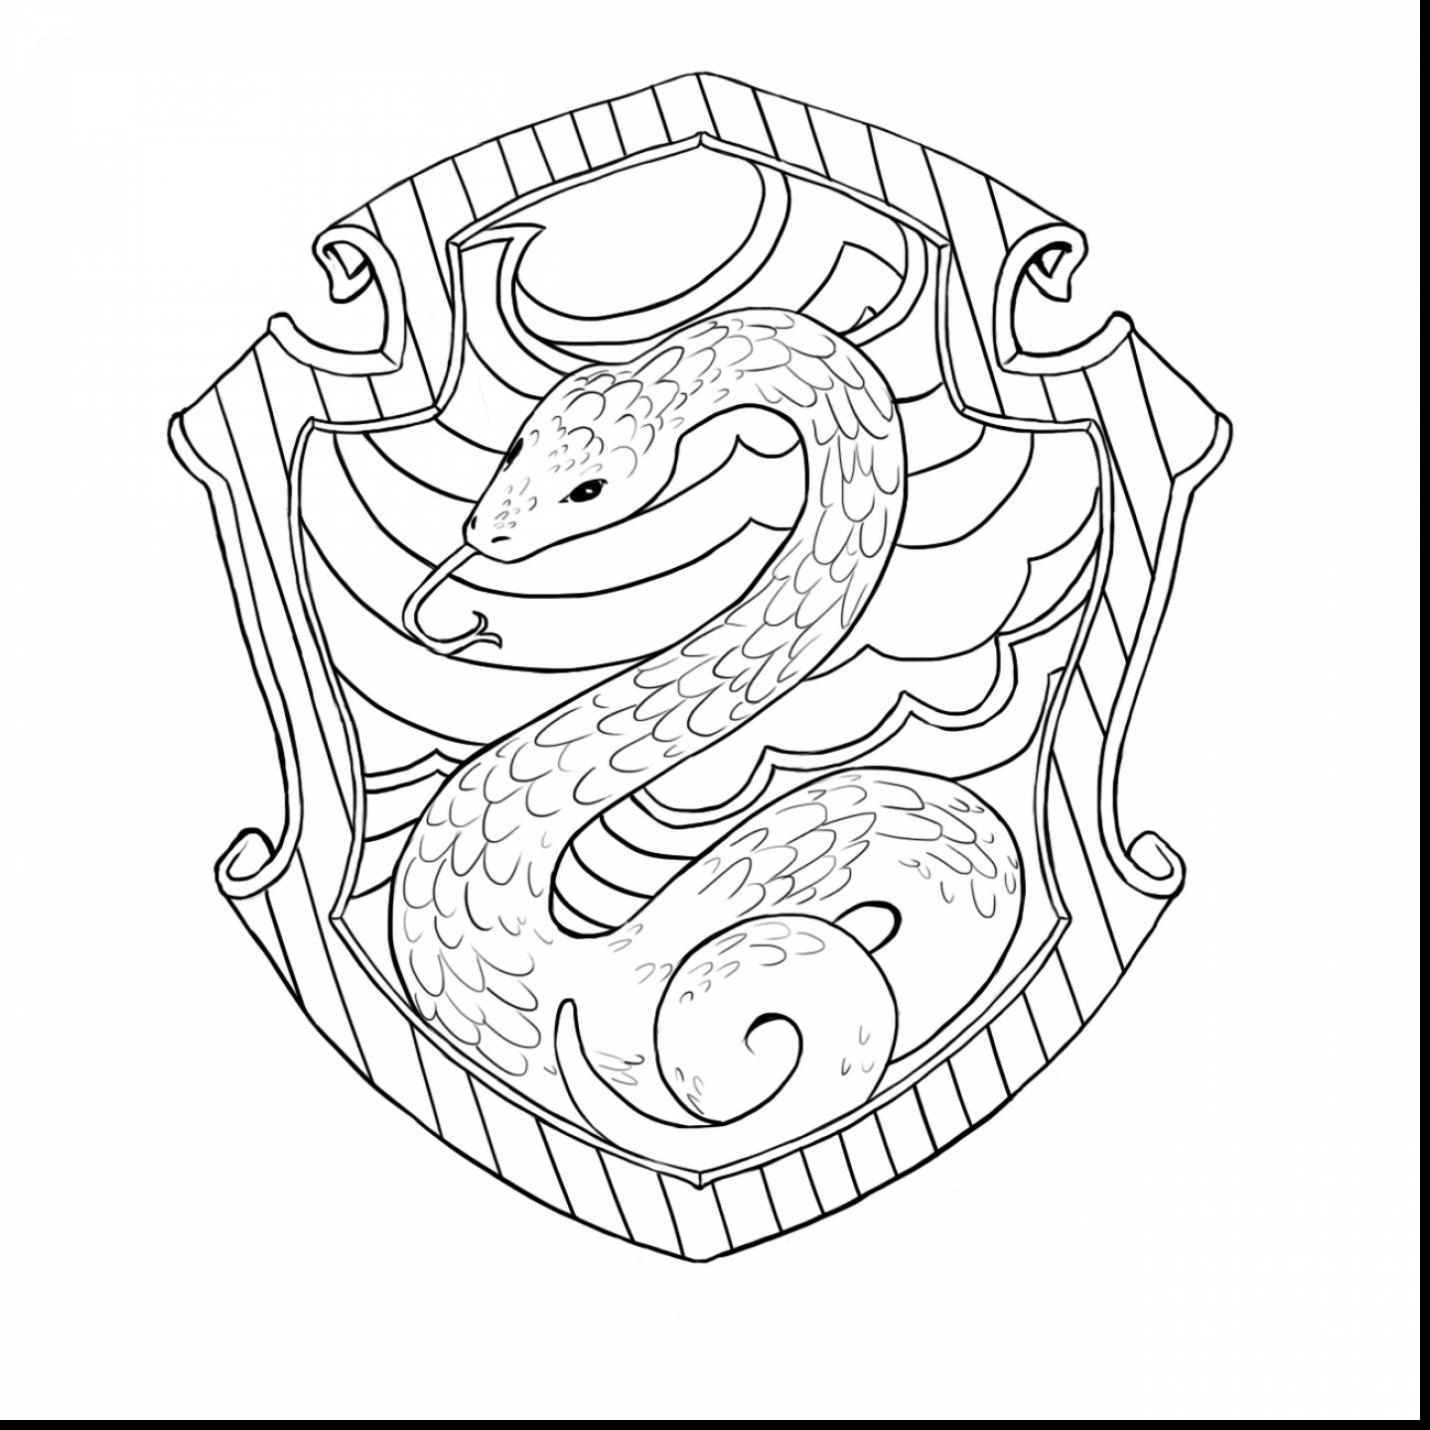 1430x1430 Lego Harry Potter Coloring Pages To Print